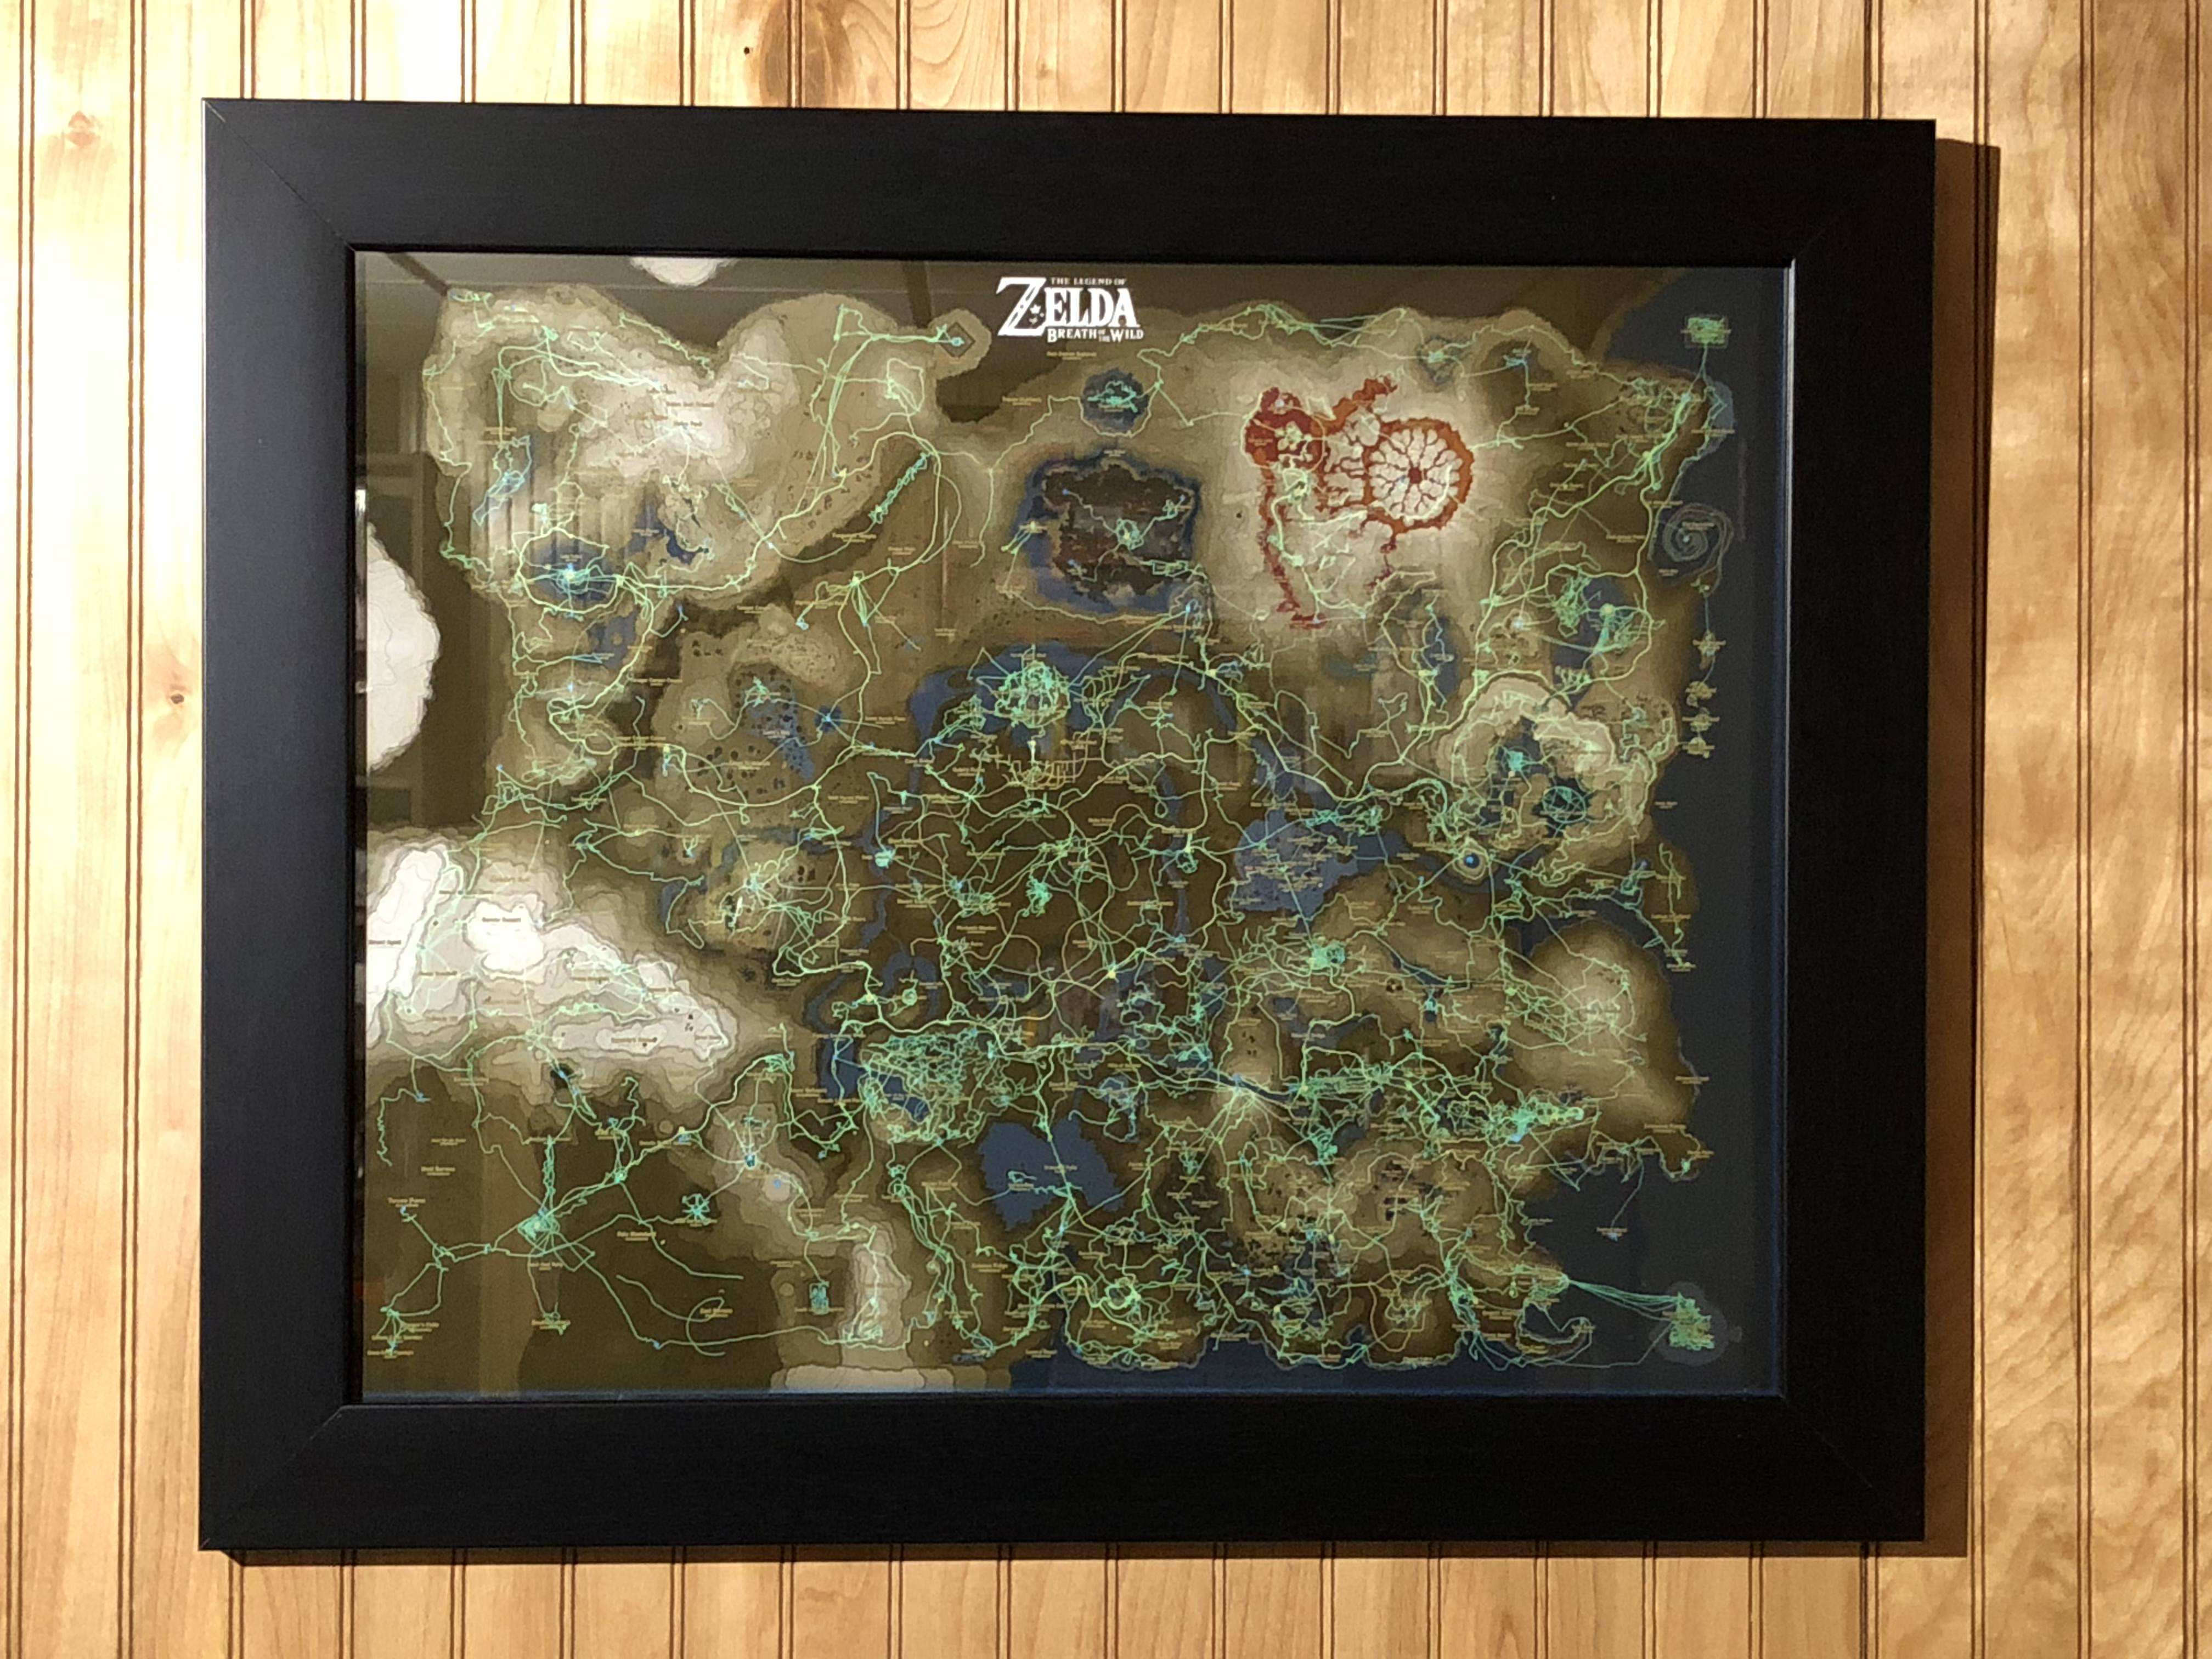 Zelda Fan Uses Breath of the Wild's Hero's Path to Map Their Entire on